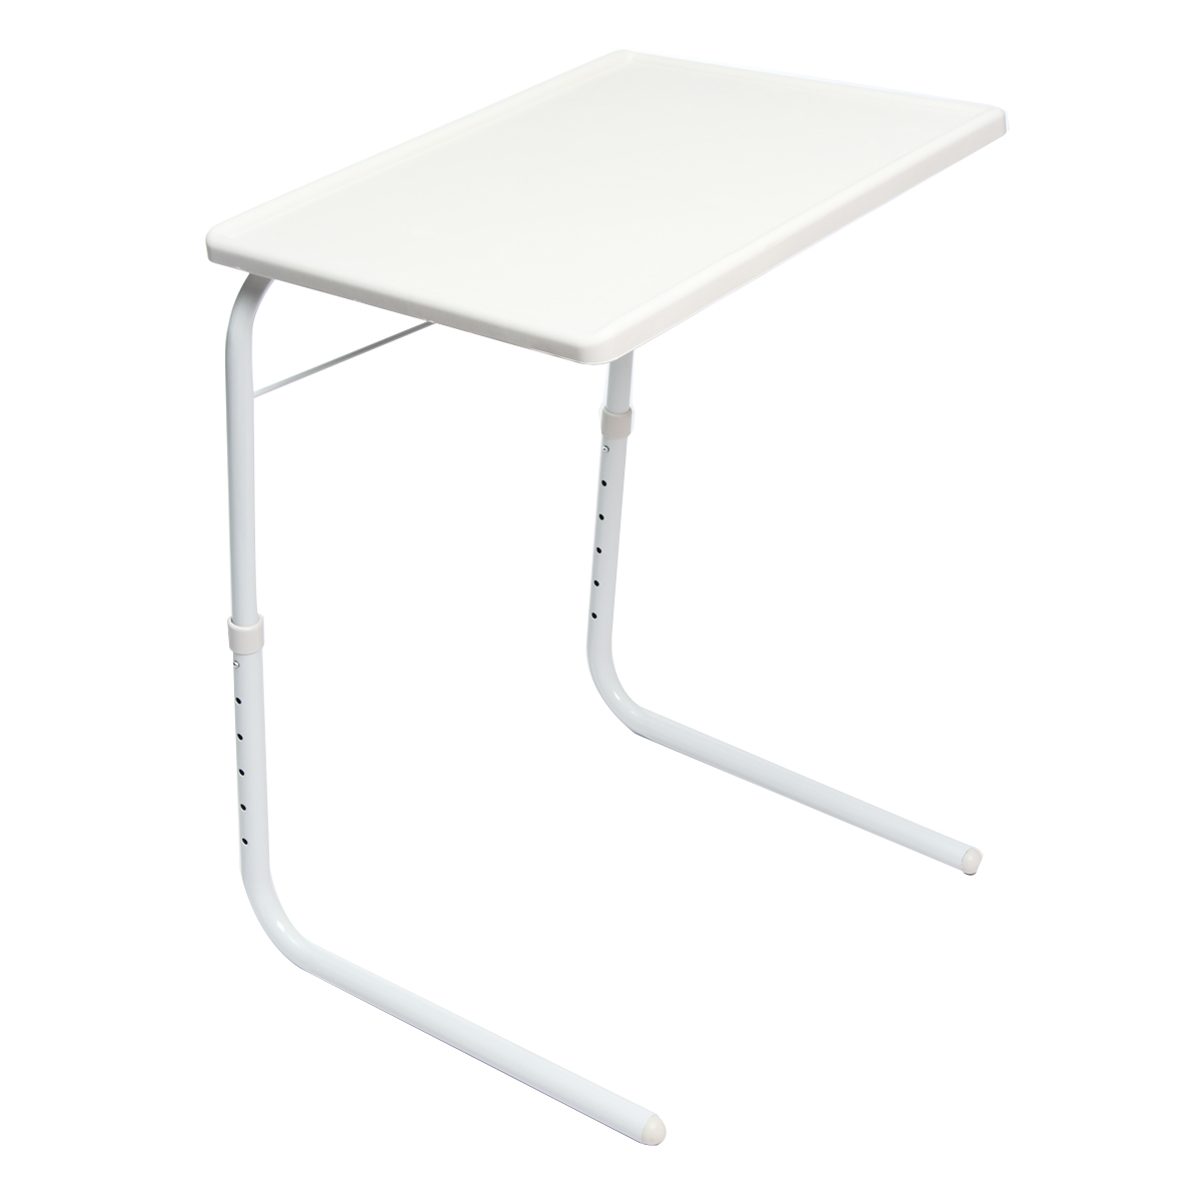 Adjustable Folding Table Dinner Coffee Laptop Travelling Tray Tall 52x40x70cm Laptop Accessories Lapdesks